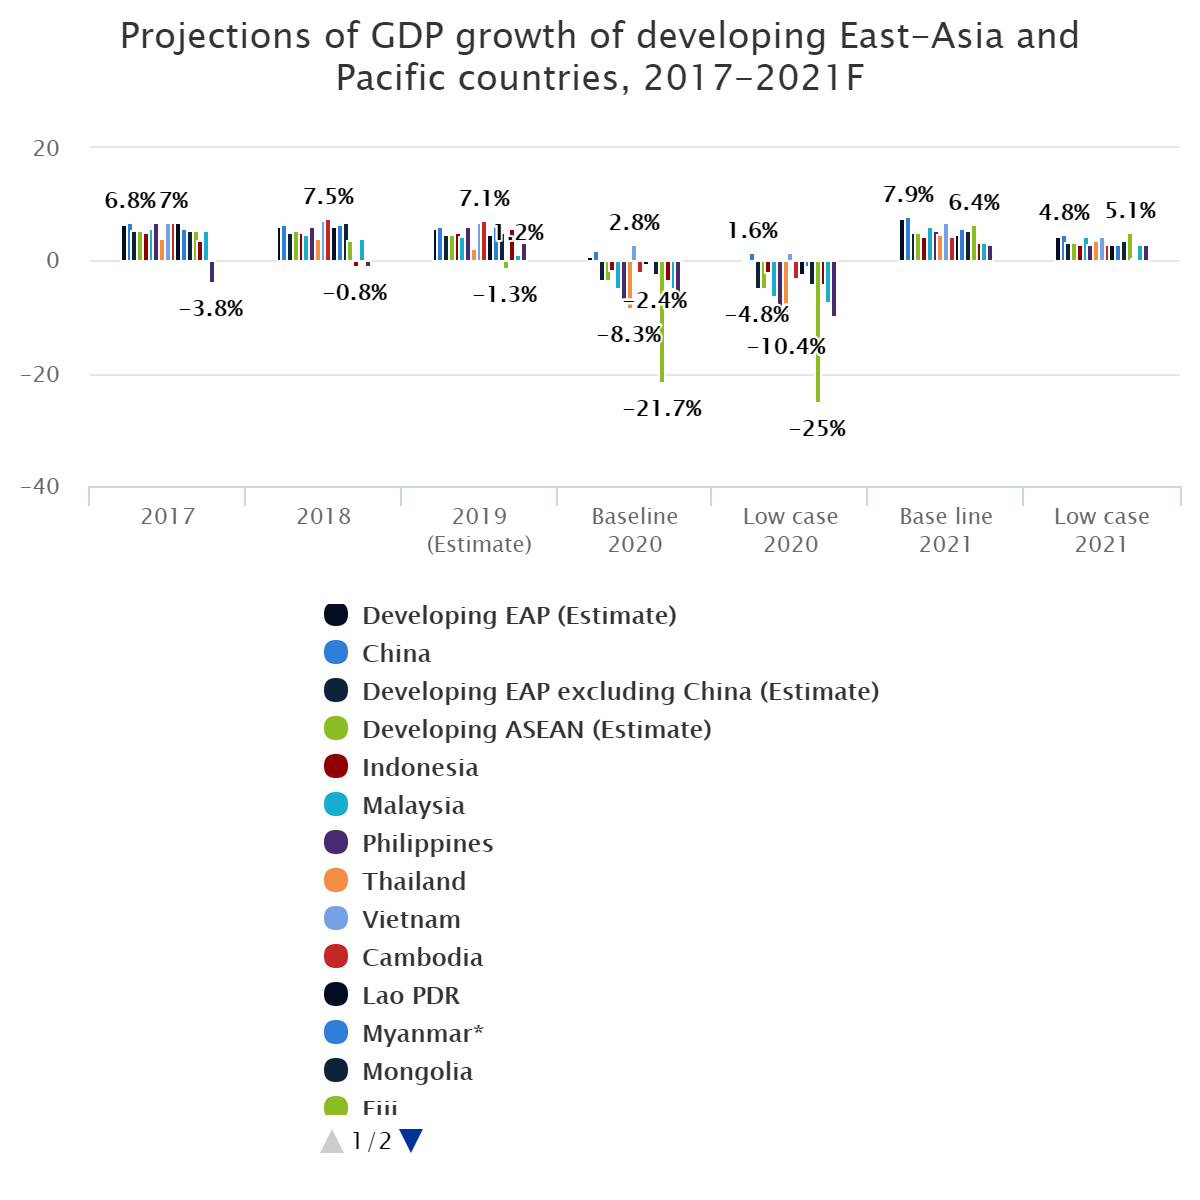 Projections of GDP growth of developing East-Asia and Pacific countries, 2017-2021F